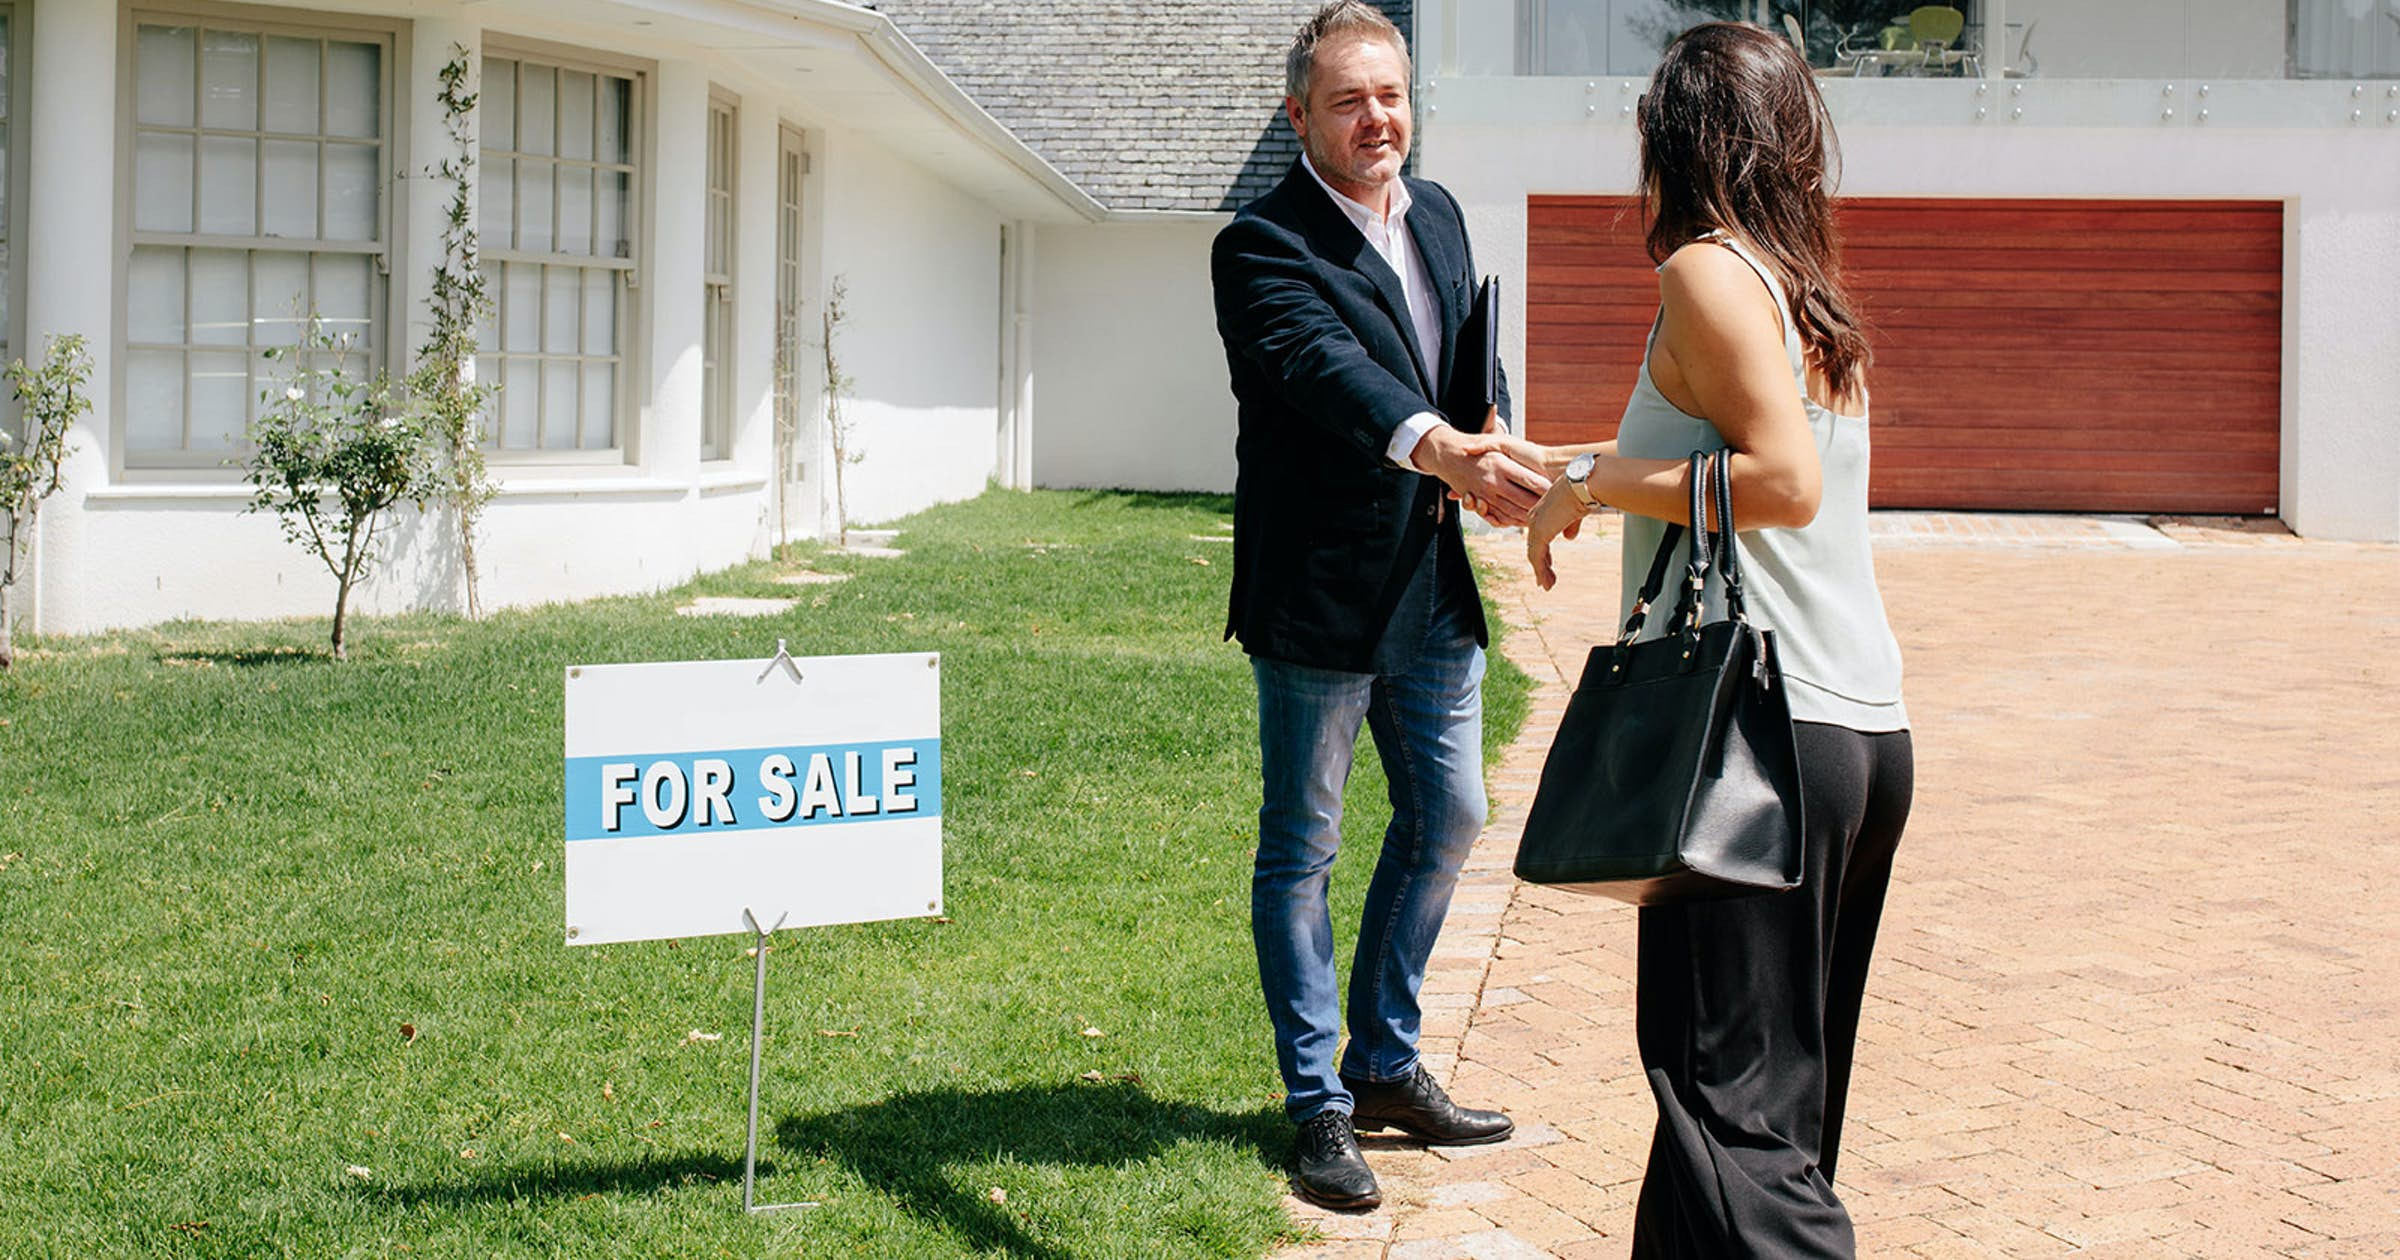 Real Estate Advice: Home Sales In Any Market